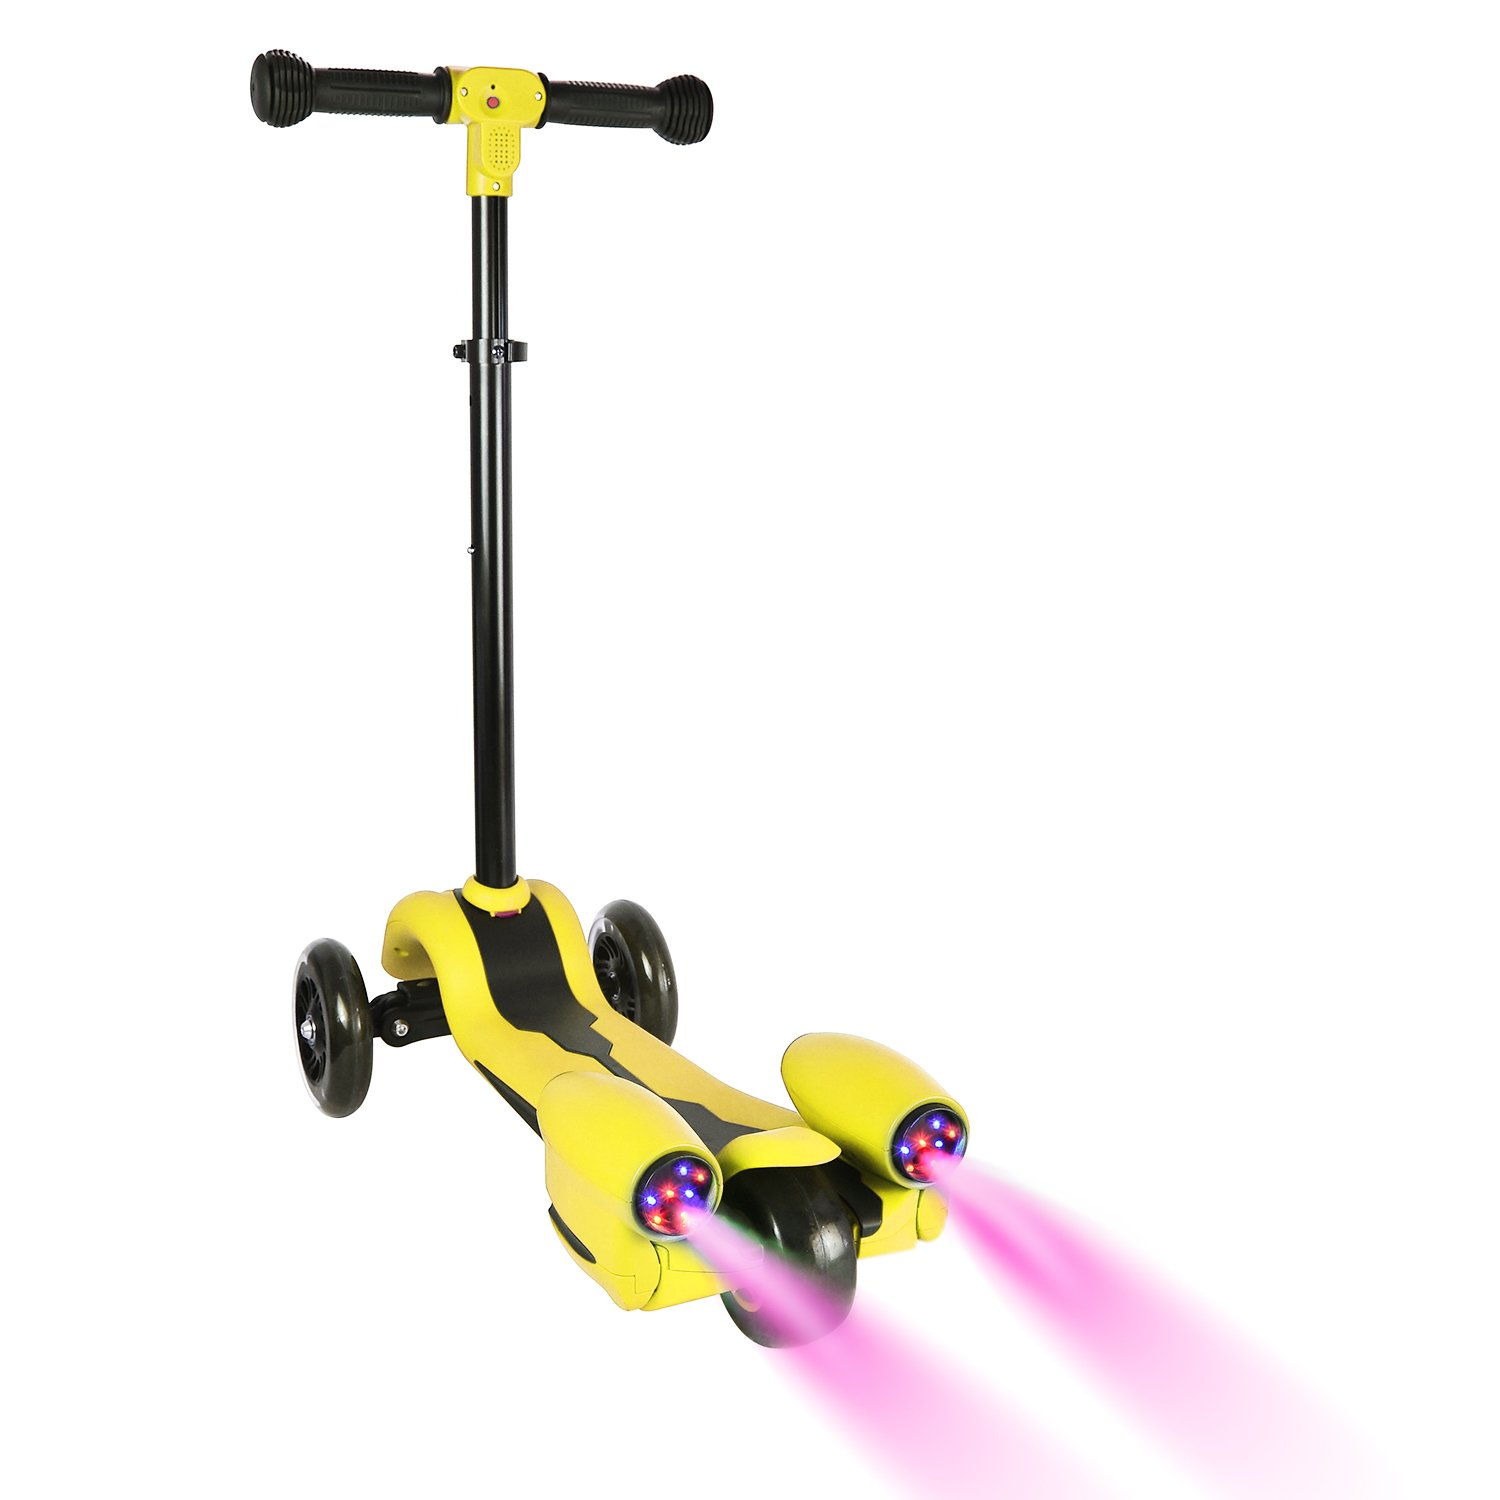 Wdtpro Kick Scooter for Kids, Atomizing Kid Scooters with LED Light Up Wheels, Rocket Sprayer and Sound Effect, Adjustable Height